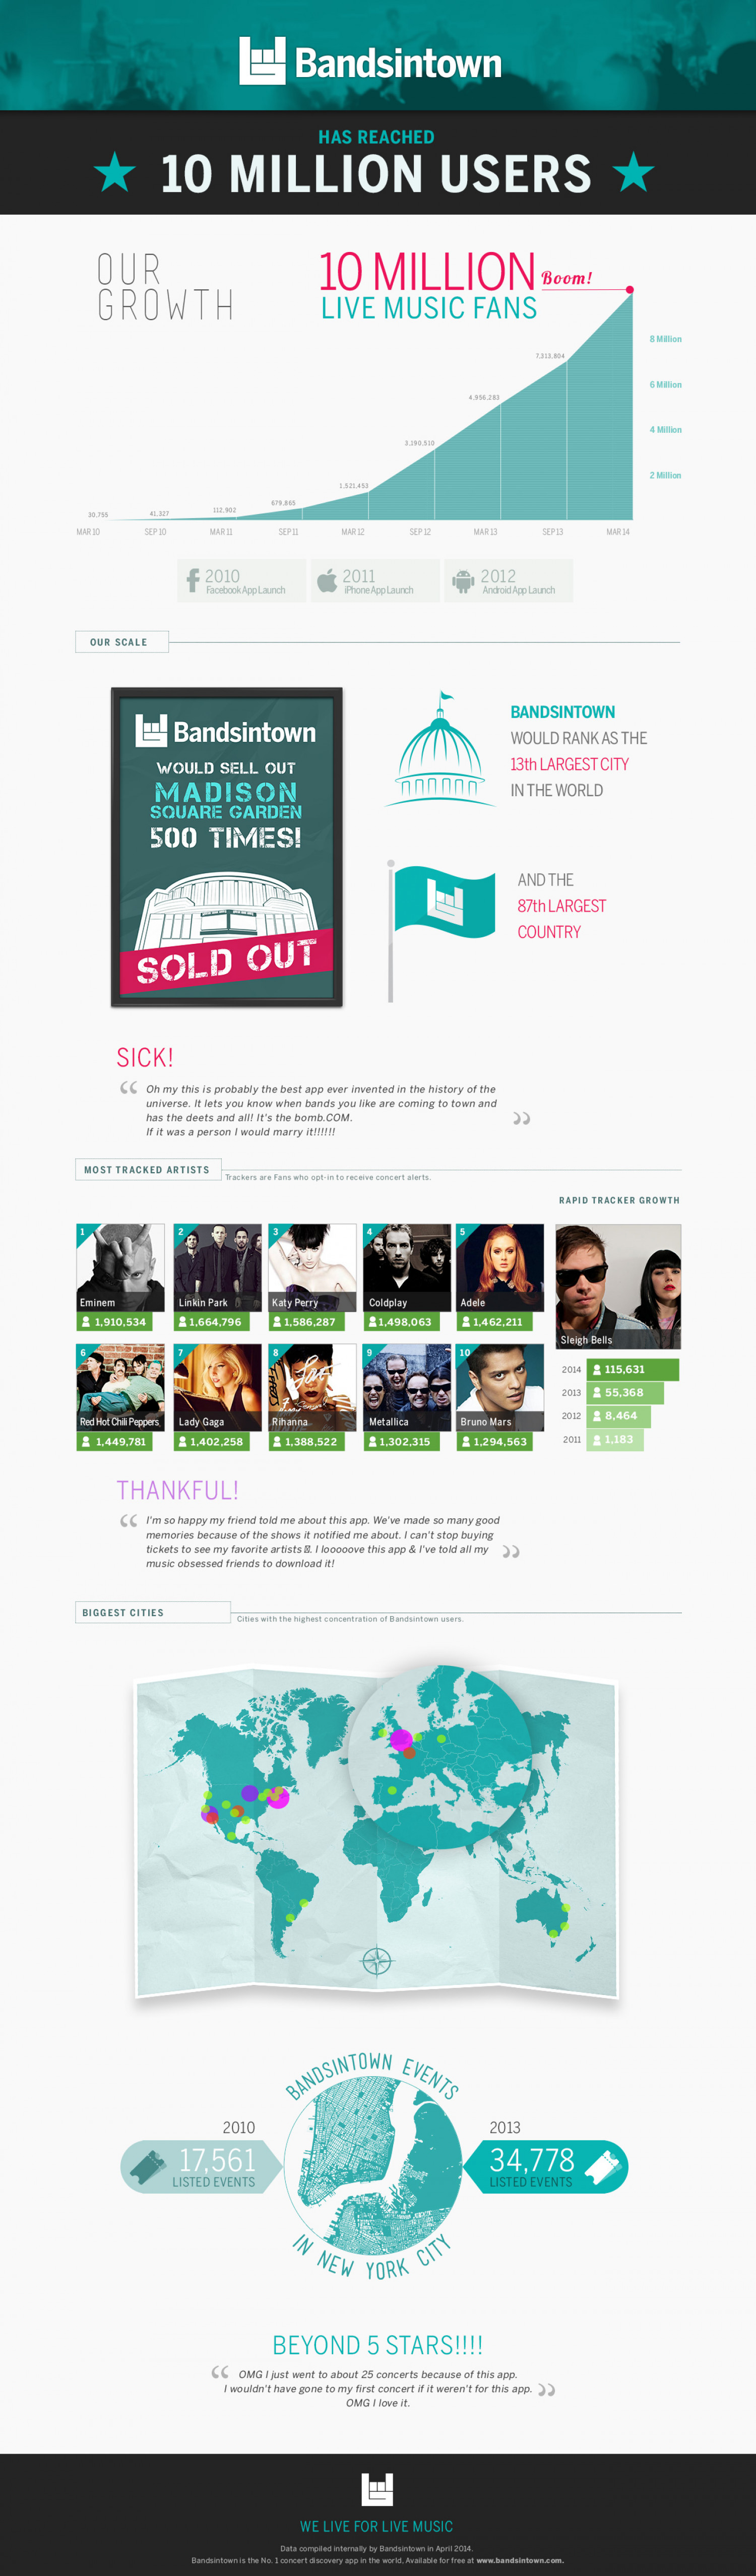 Bandsintown: Has Reached 10 Million Users Infographic